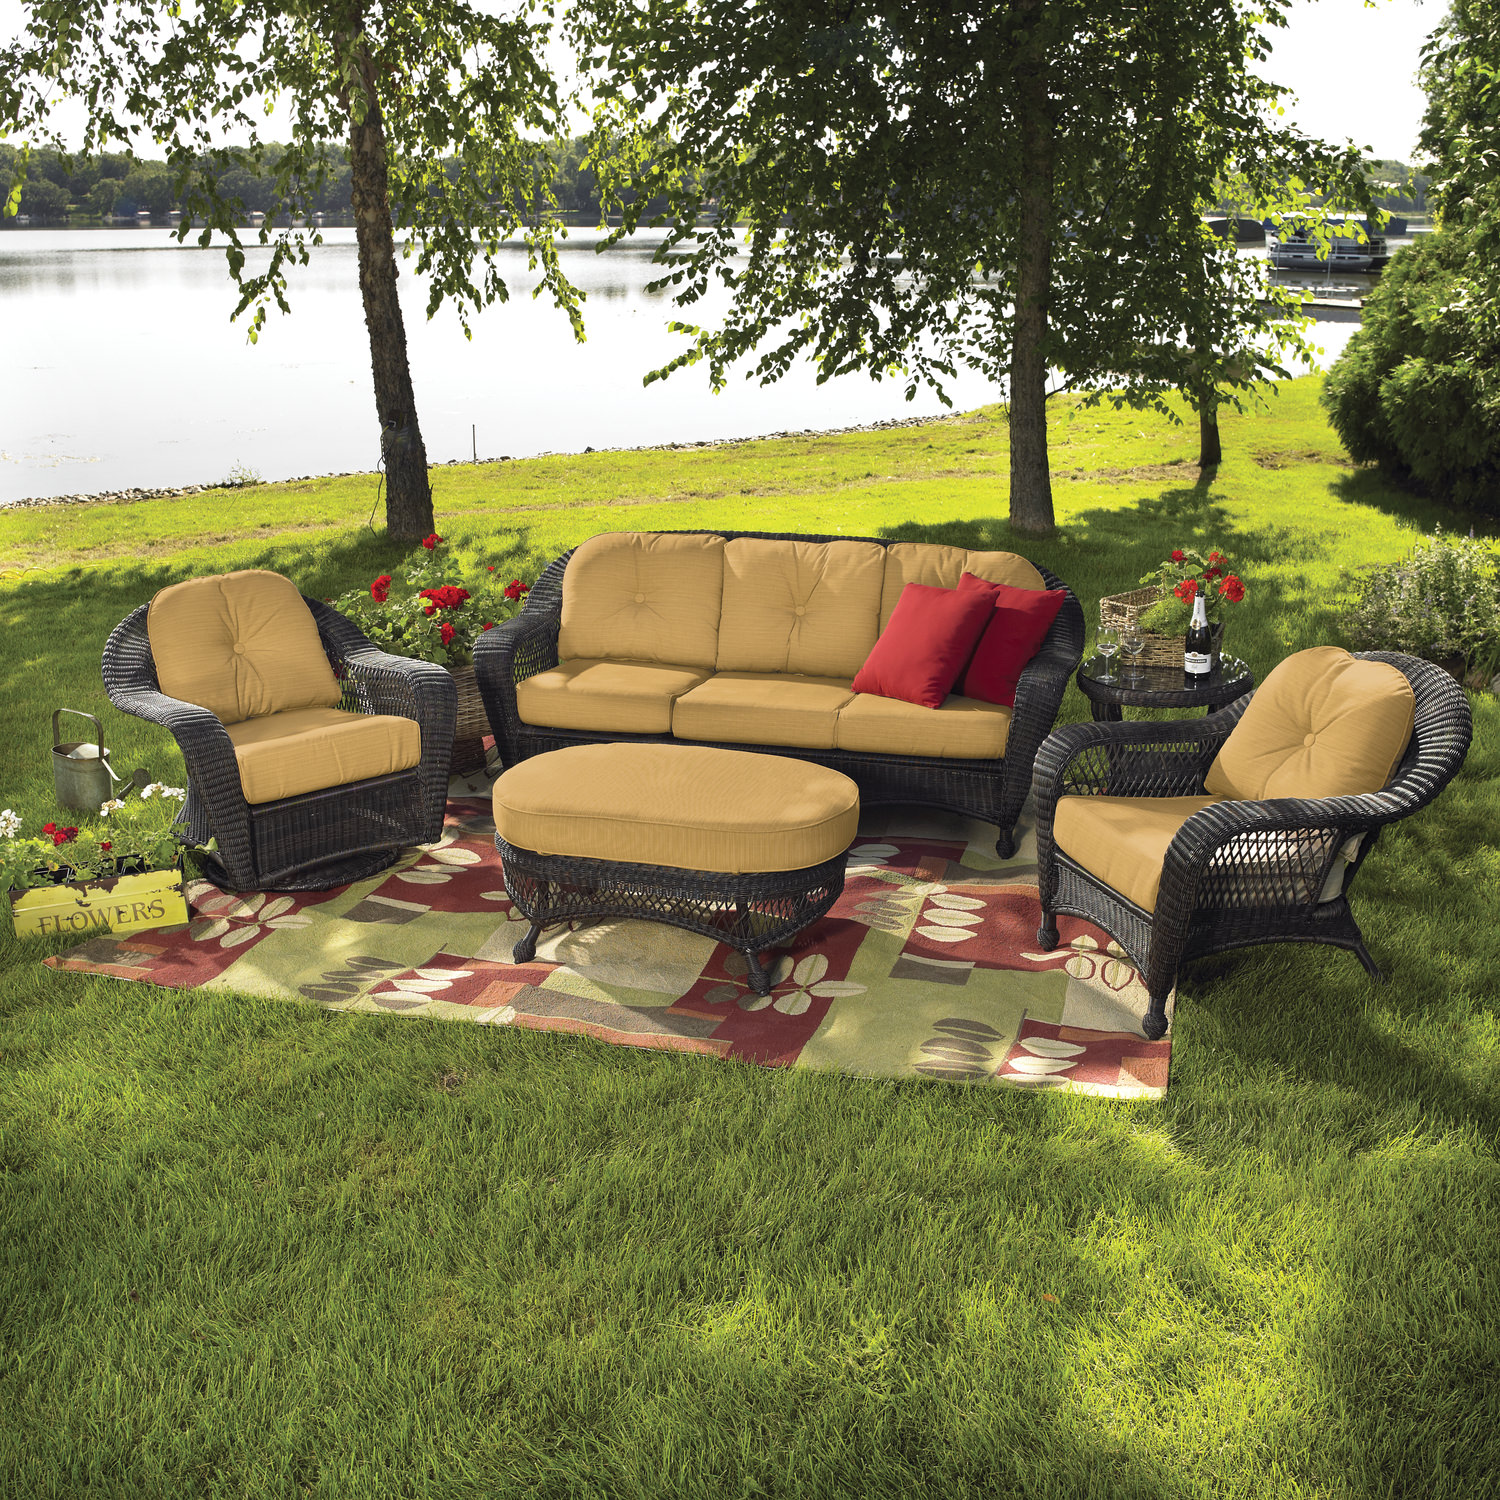 Northcape patio furniture reviews 28 images patio for Furniture 7 reviews